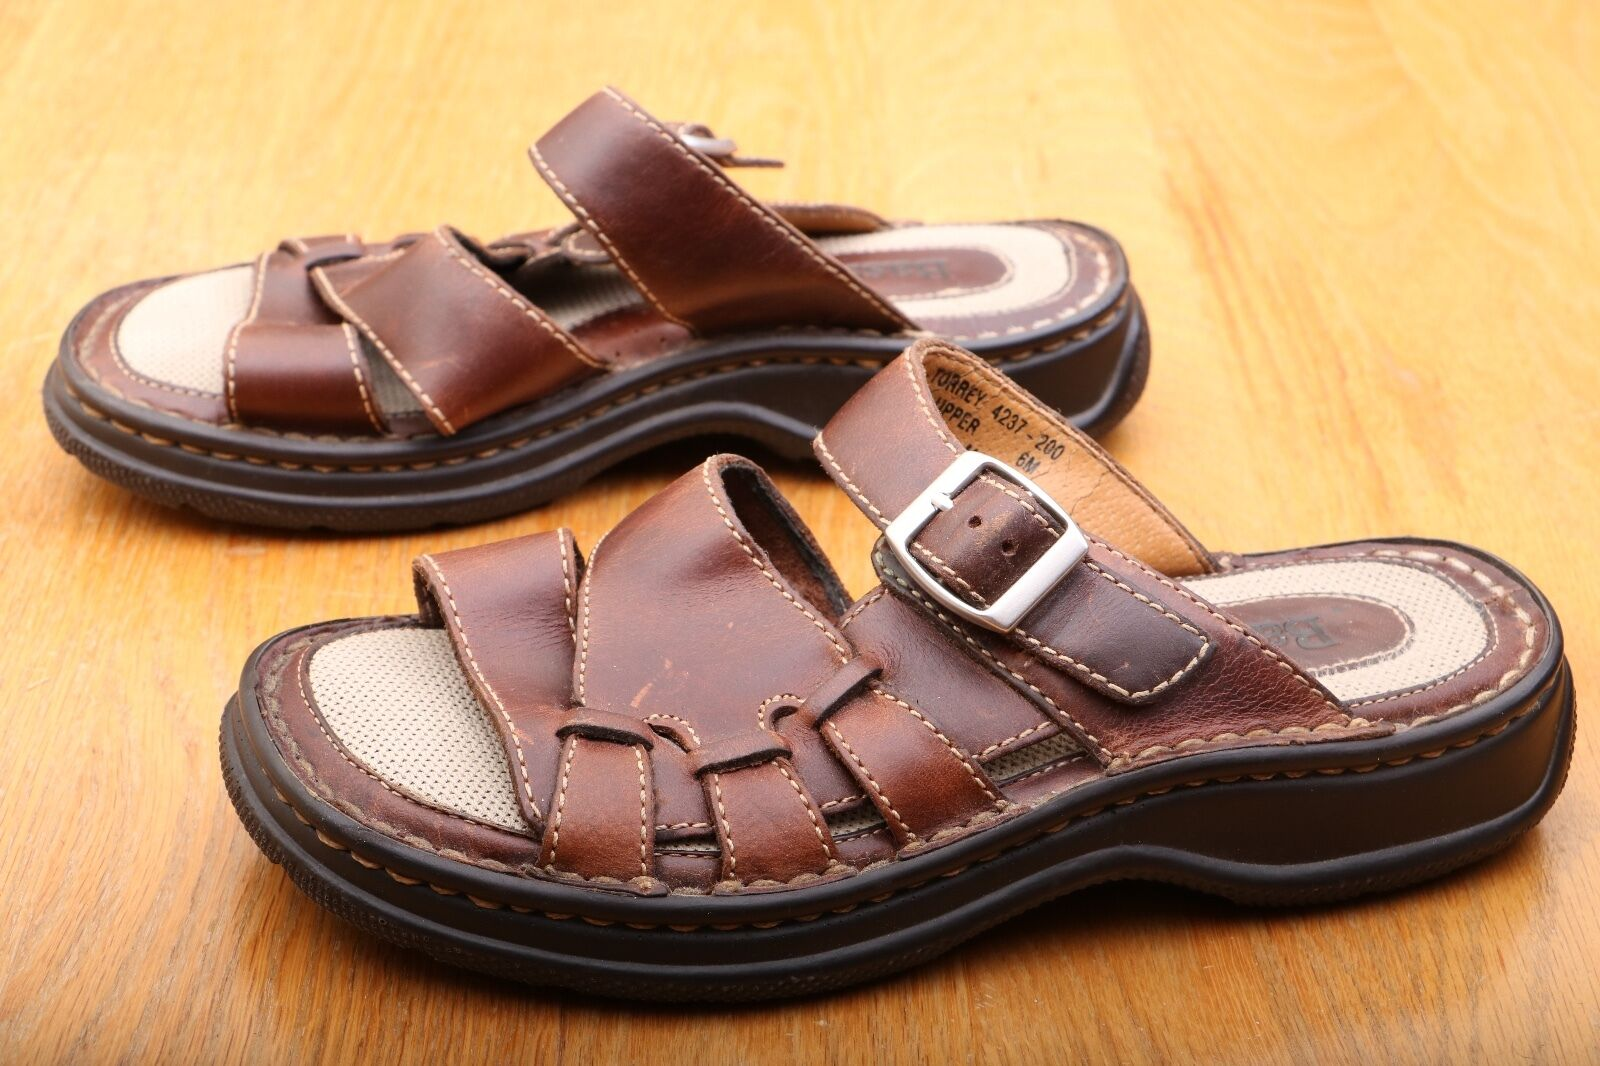 Bass Brown Buckle Sandals Loafers Men's Size 6 M